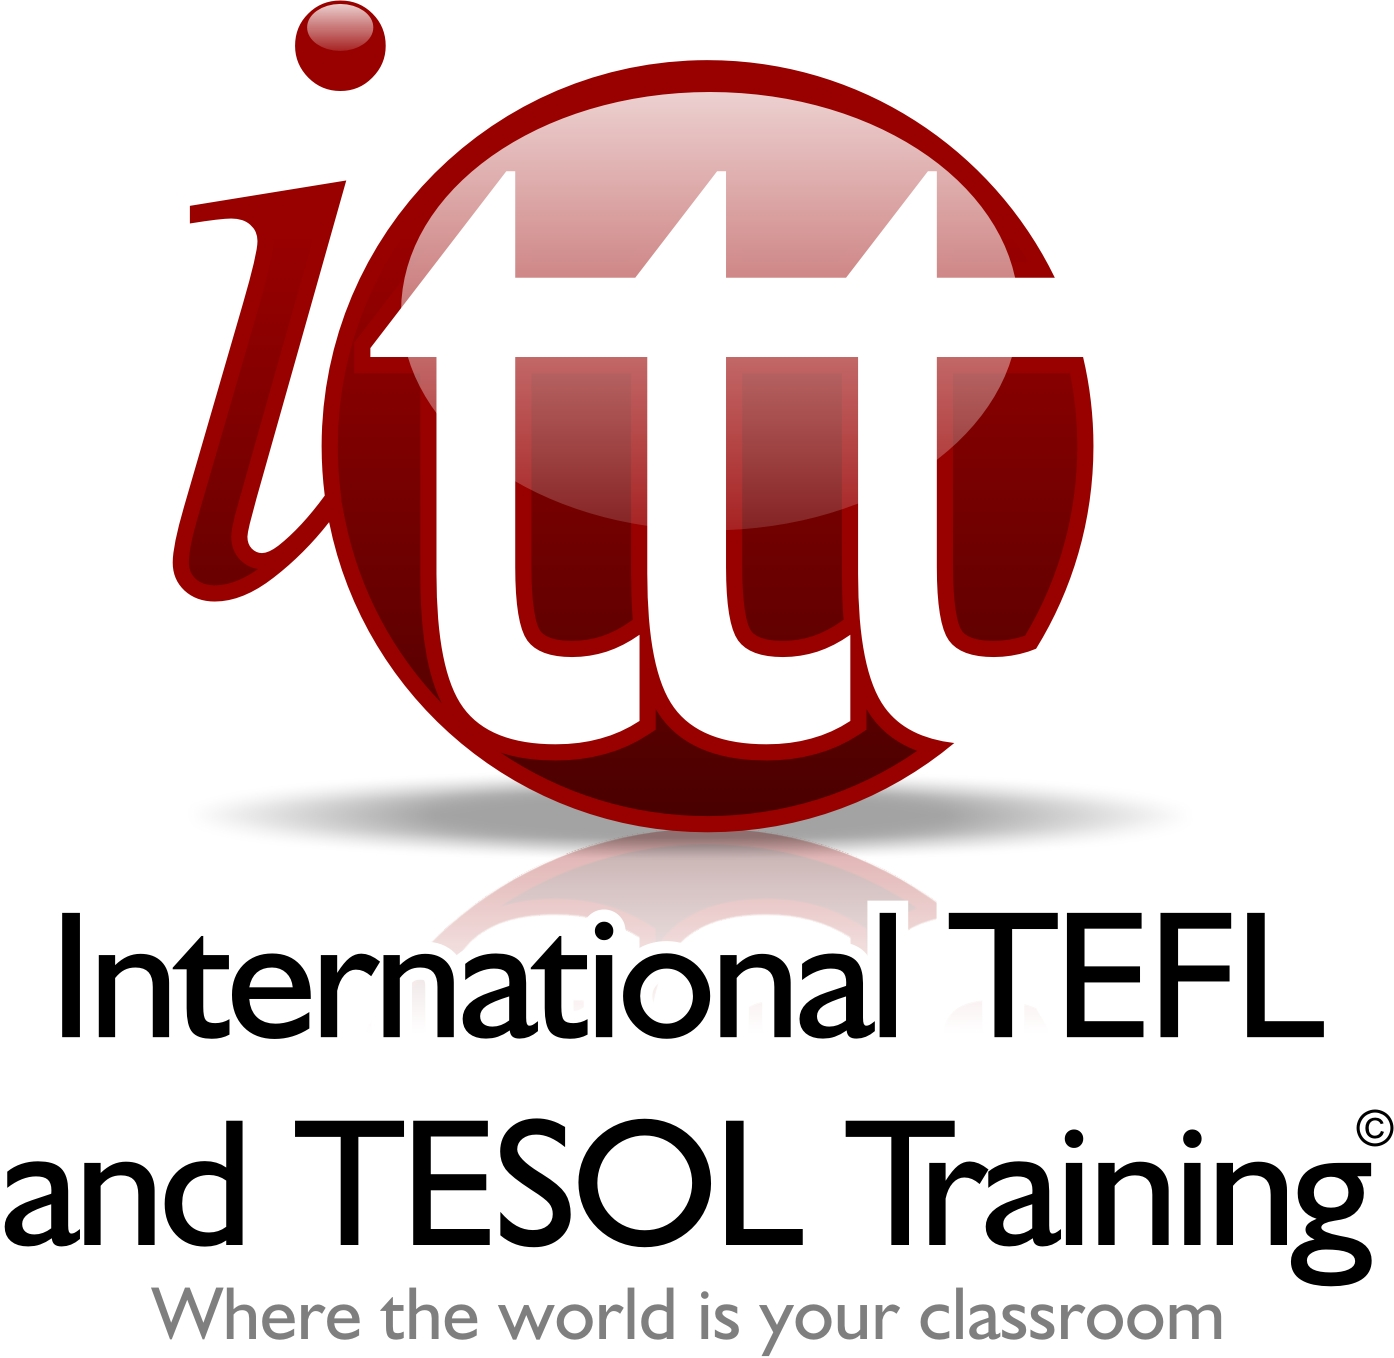 Read tefl mate Reviews